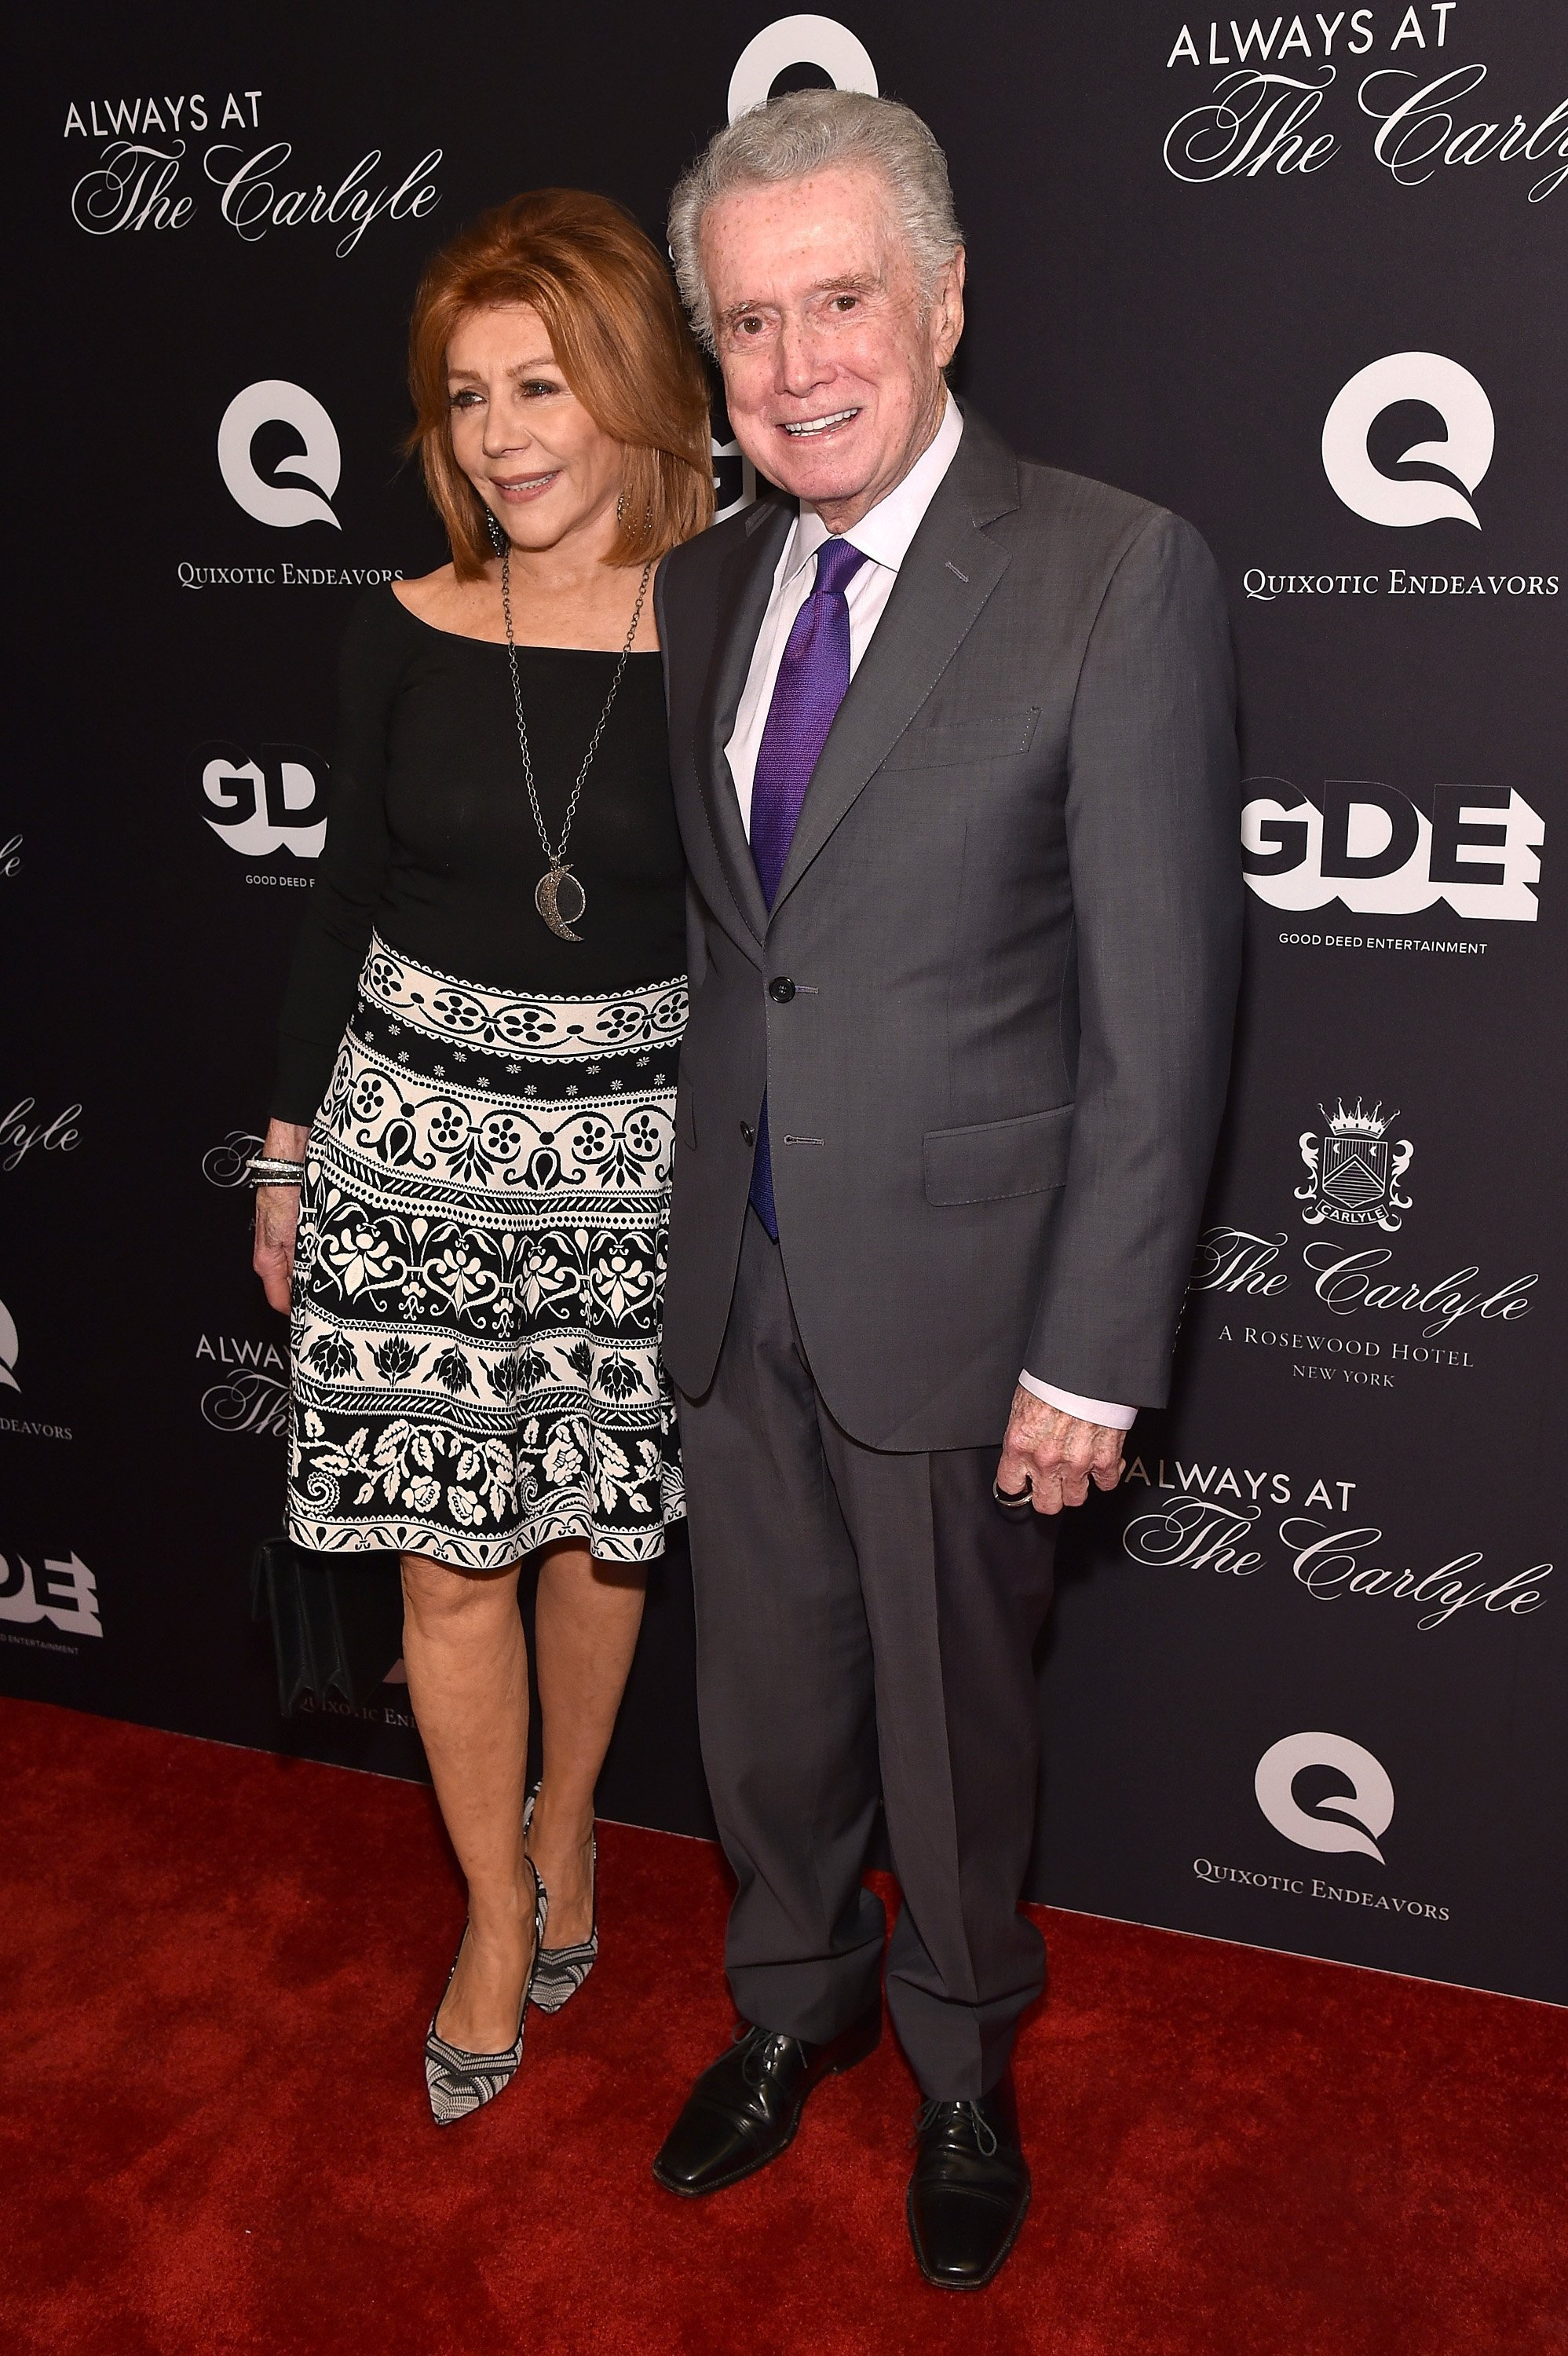 Regis and Joy Philbin on May 8, 2018 in New York City | Source: Getty Images/Global Images Ukraine